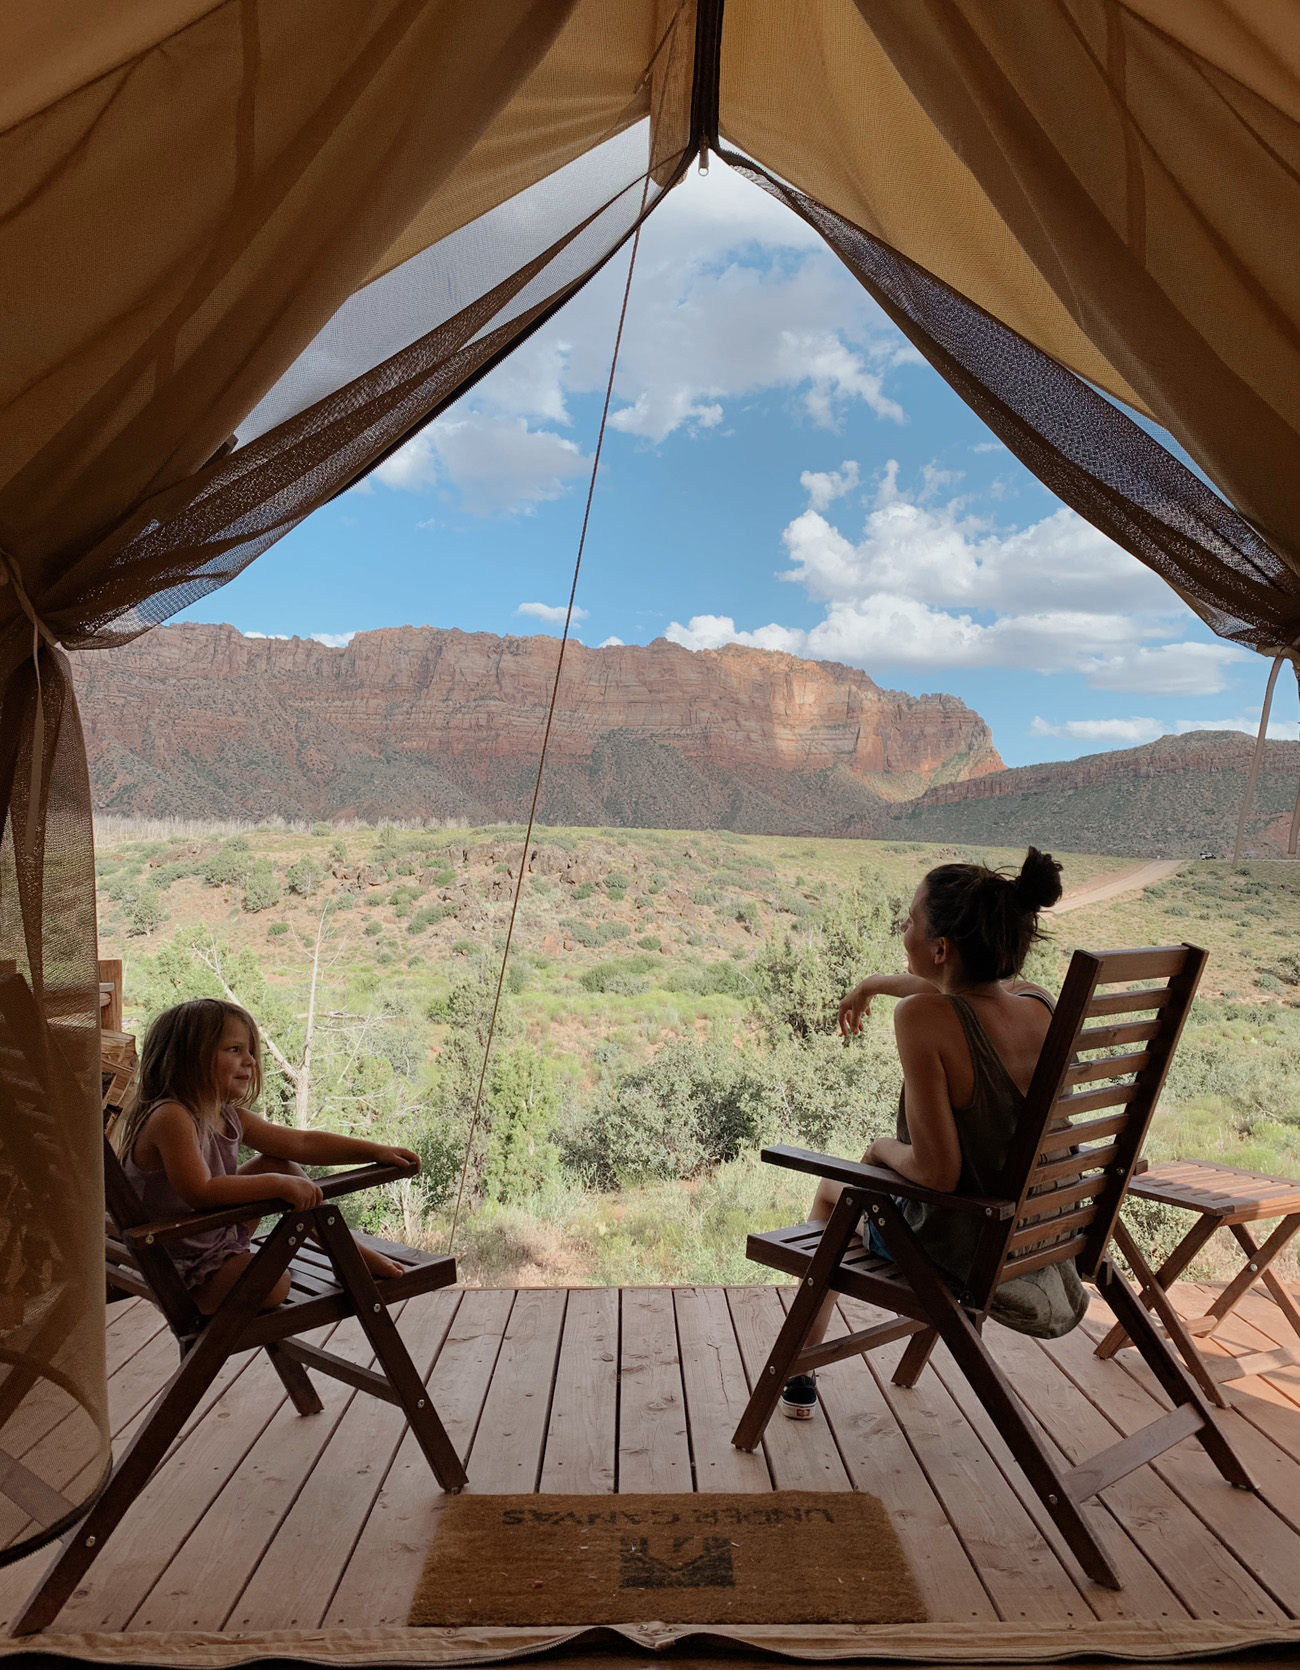 Our Glamping Adventure at Under Canvas Zion - Green Wedding